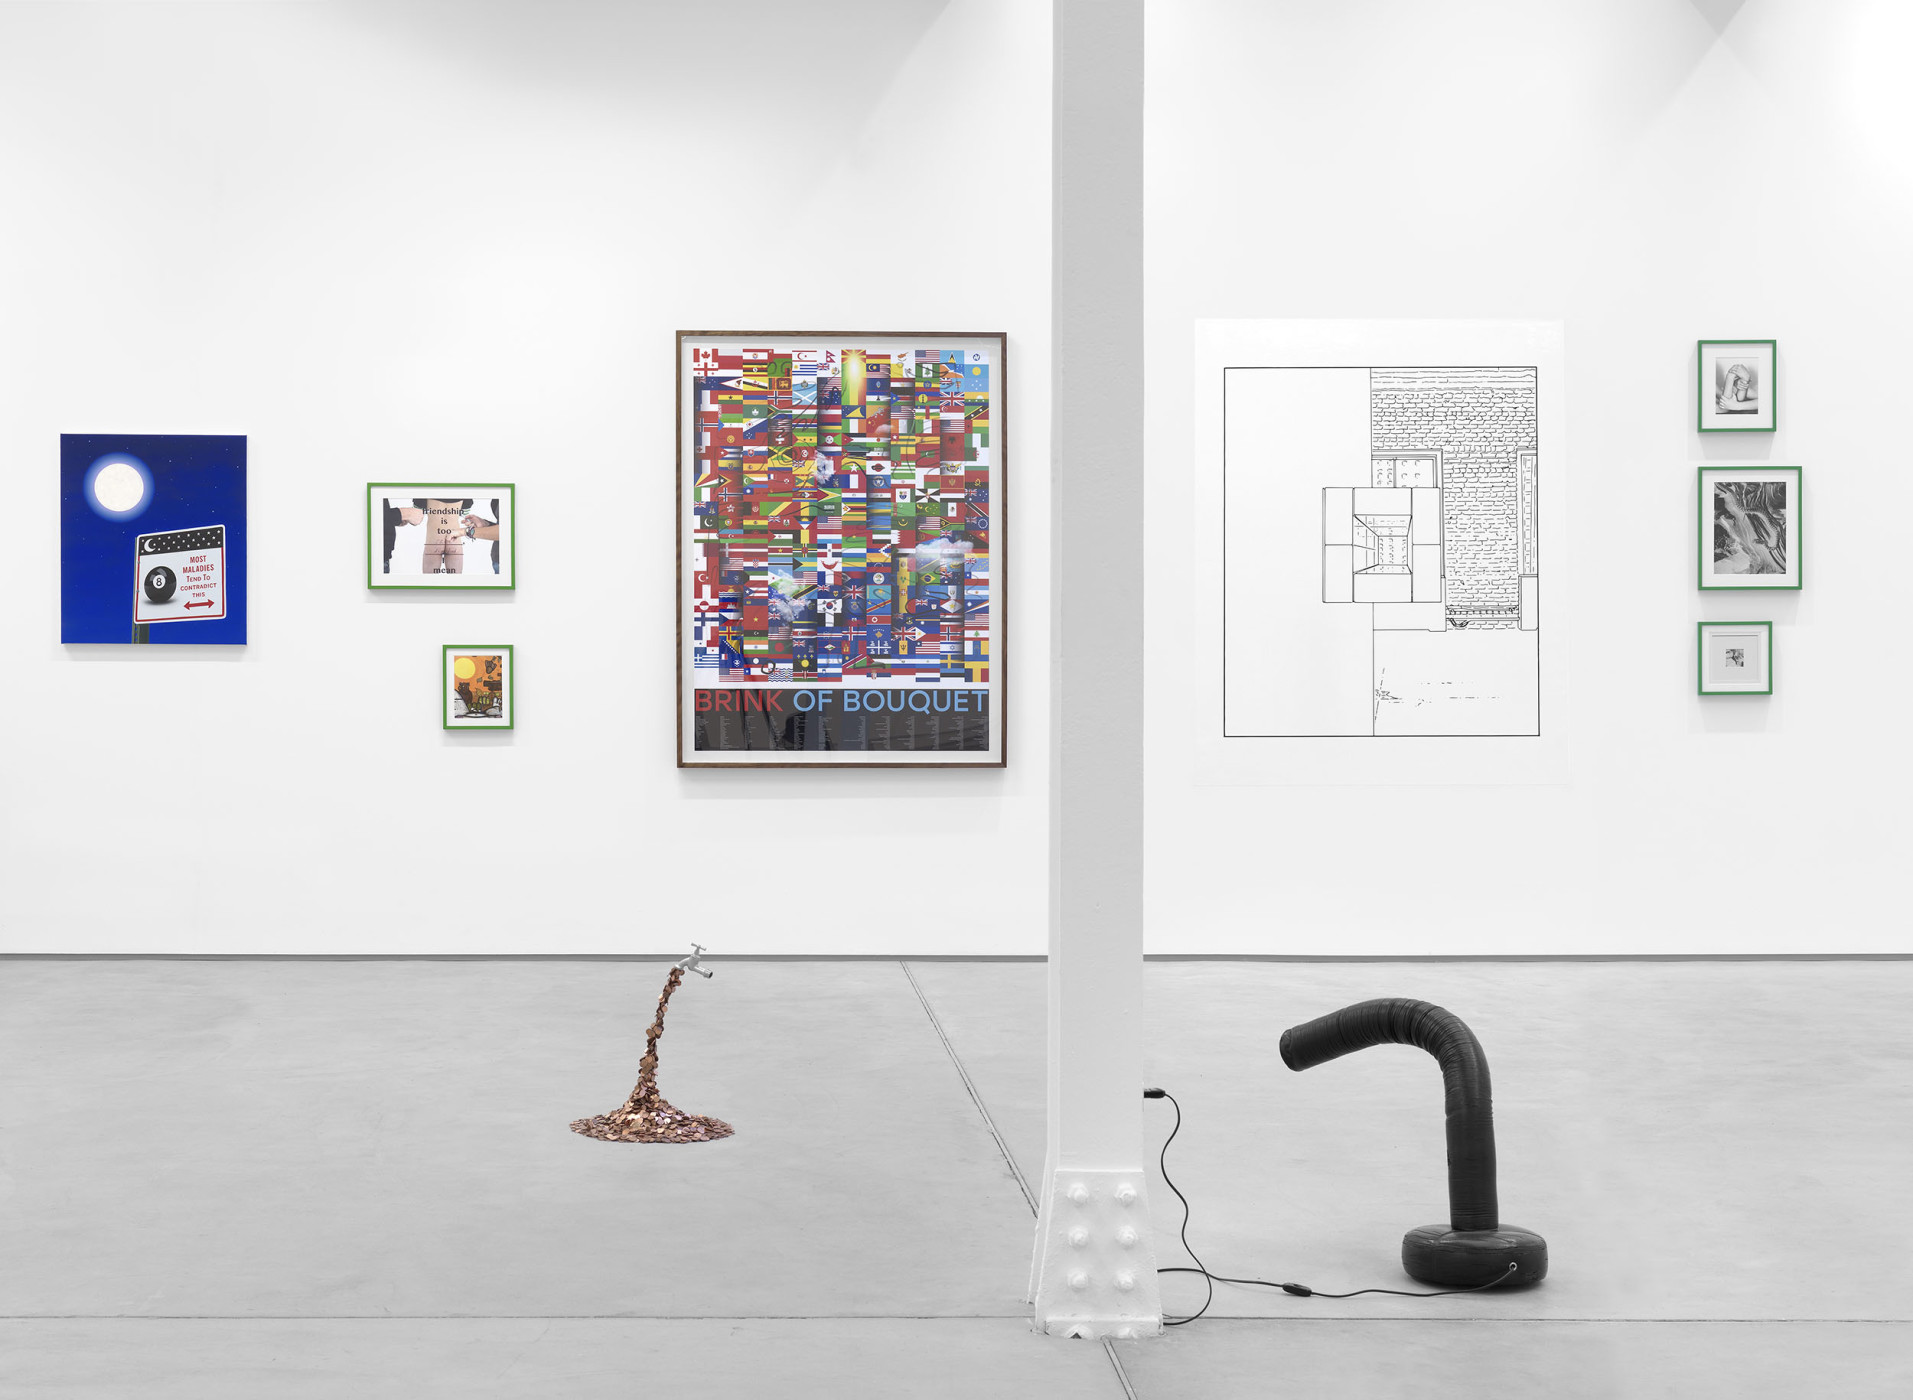 "<div class=""artwork_caption""><p>Installation View</p></div>"